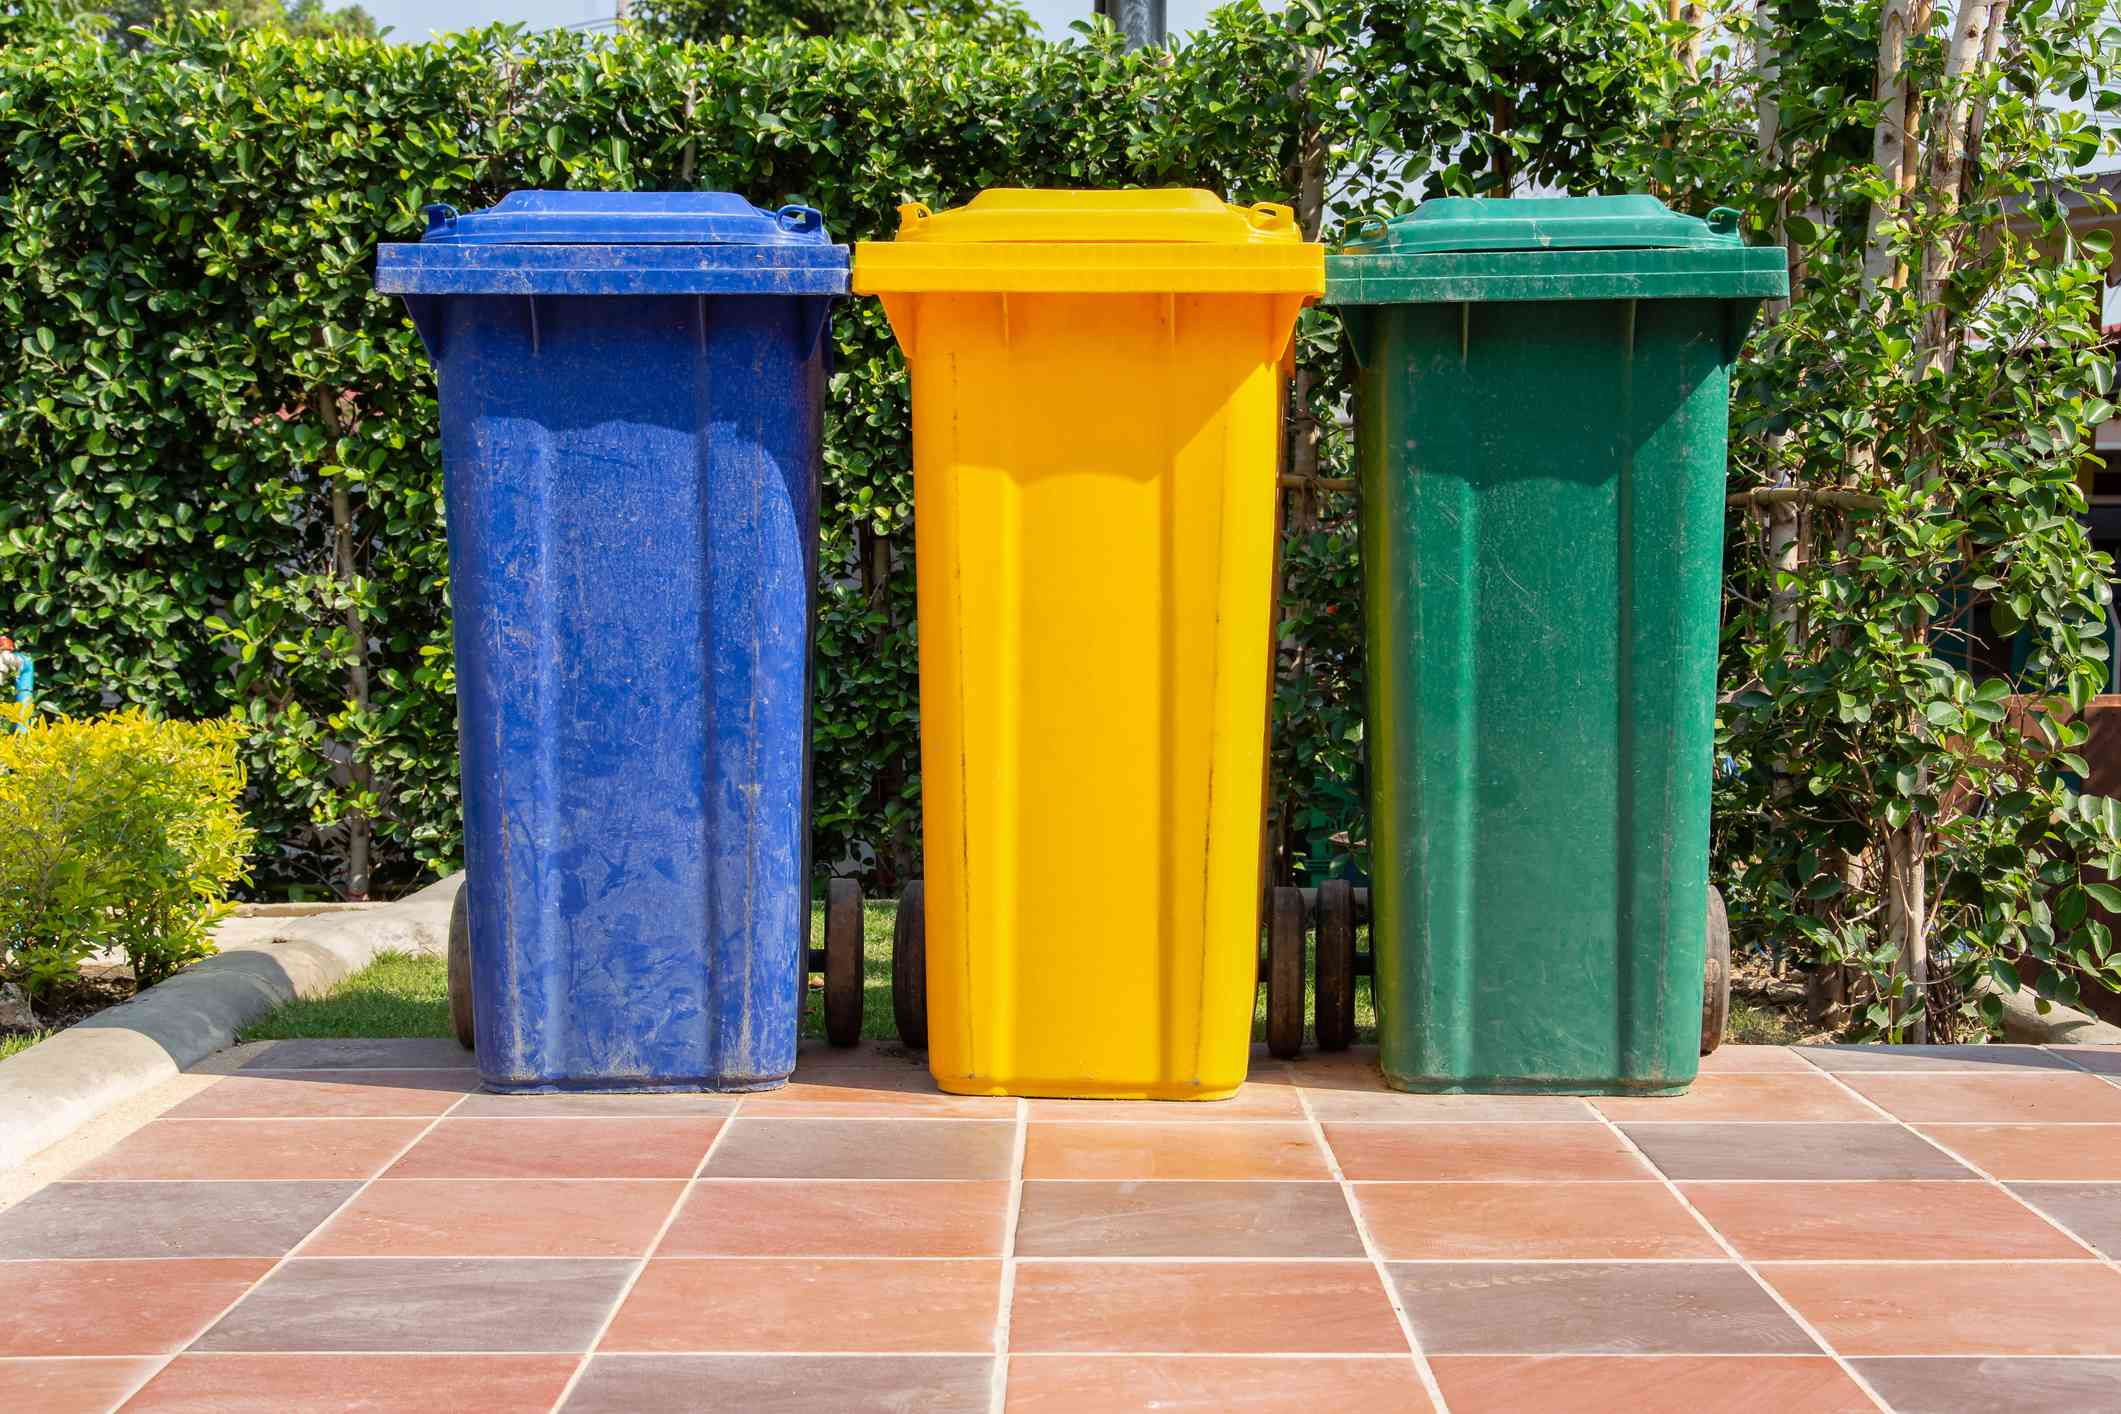 Colorful plastic bins for different waste types